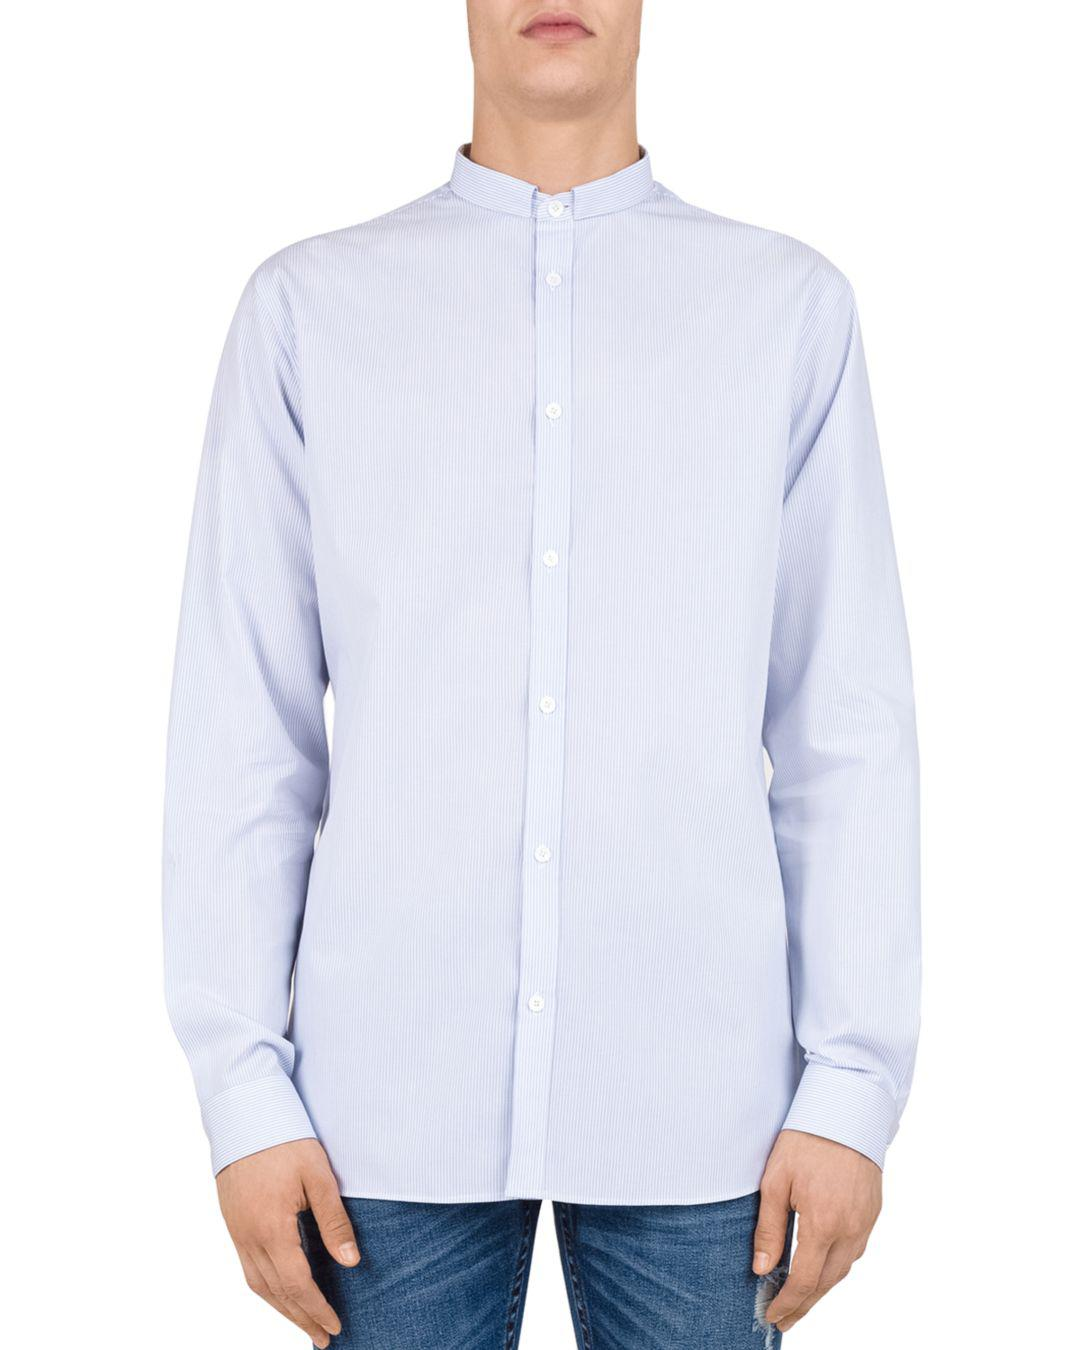 4c590ea02bc The Kooples Popeline Slim Fit Button-down Shirt in Blue for Men - Lyst